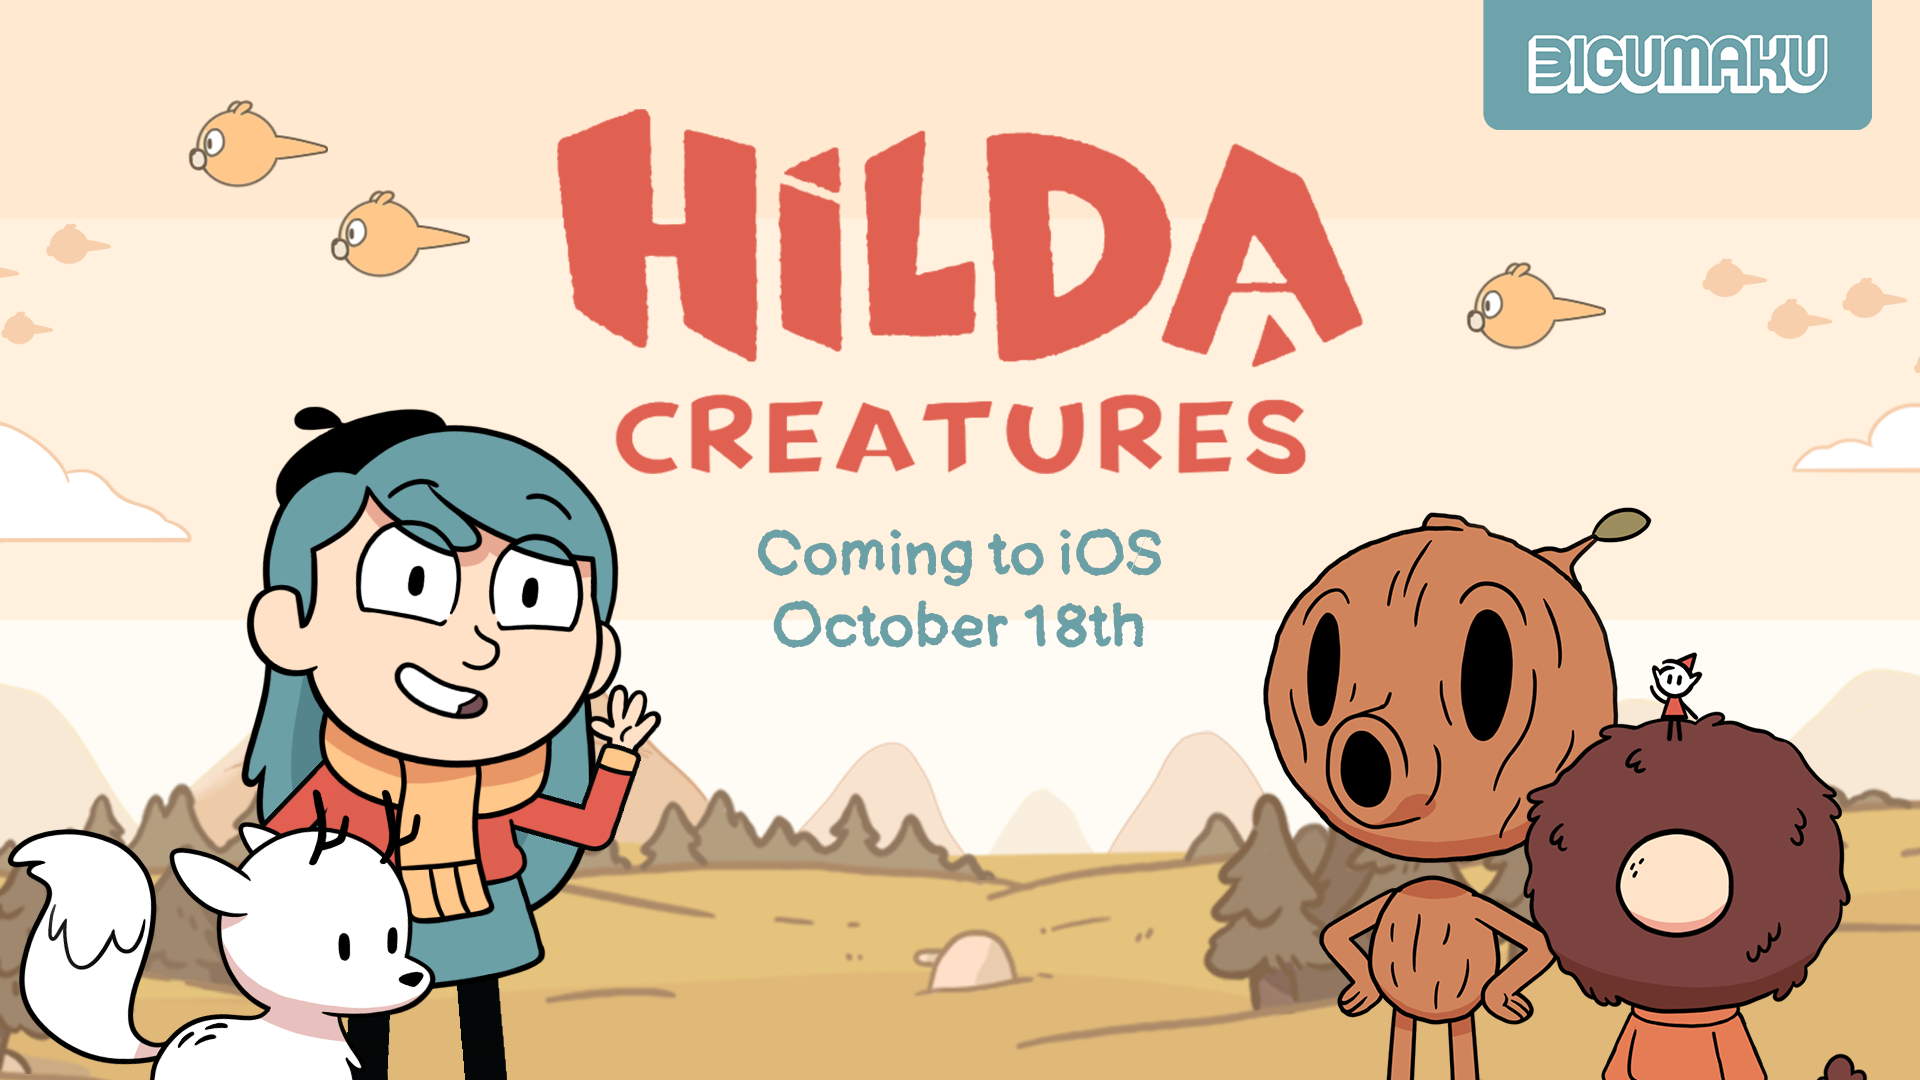 Hilda Creatures coming soon